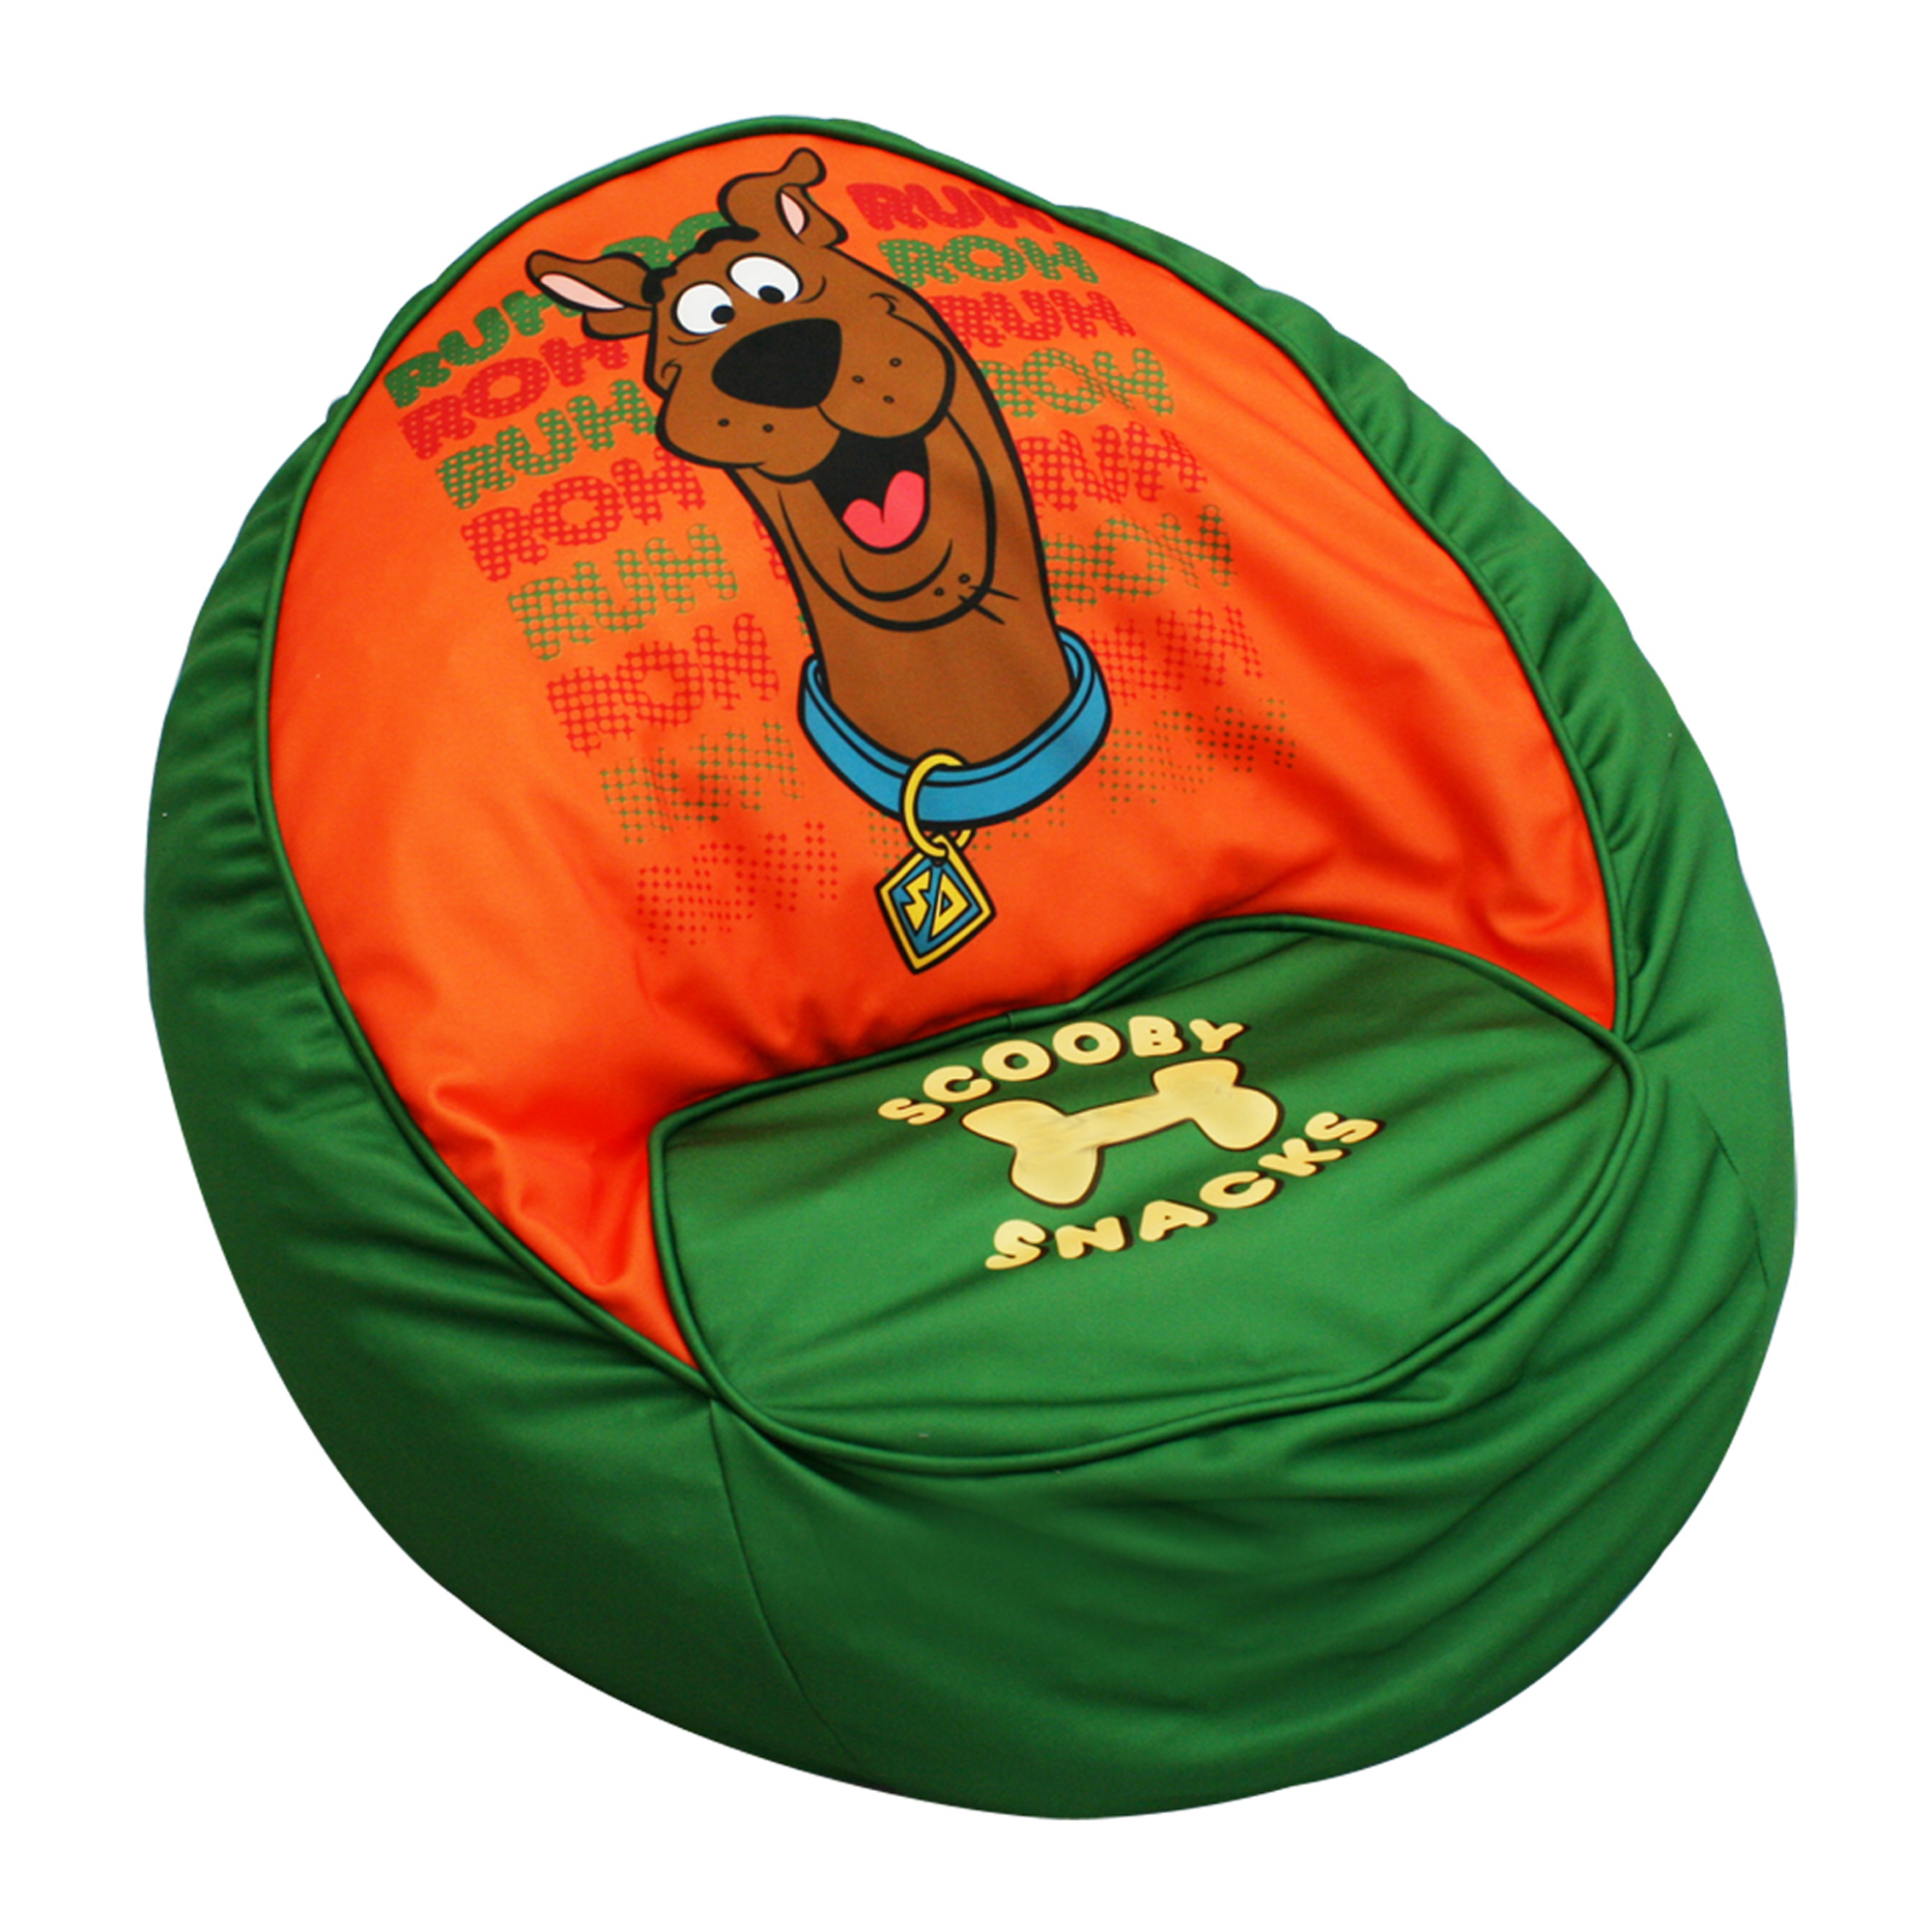 scooby doo chair exquisite covers essex warner brothers toddler roh lounger bean